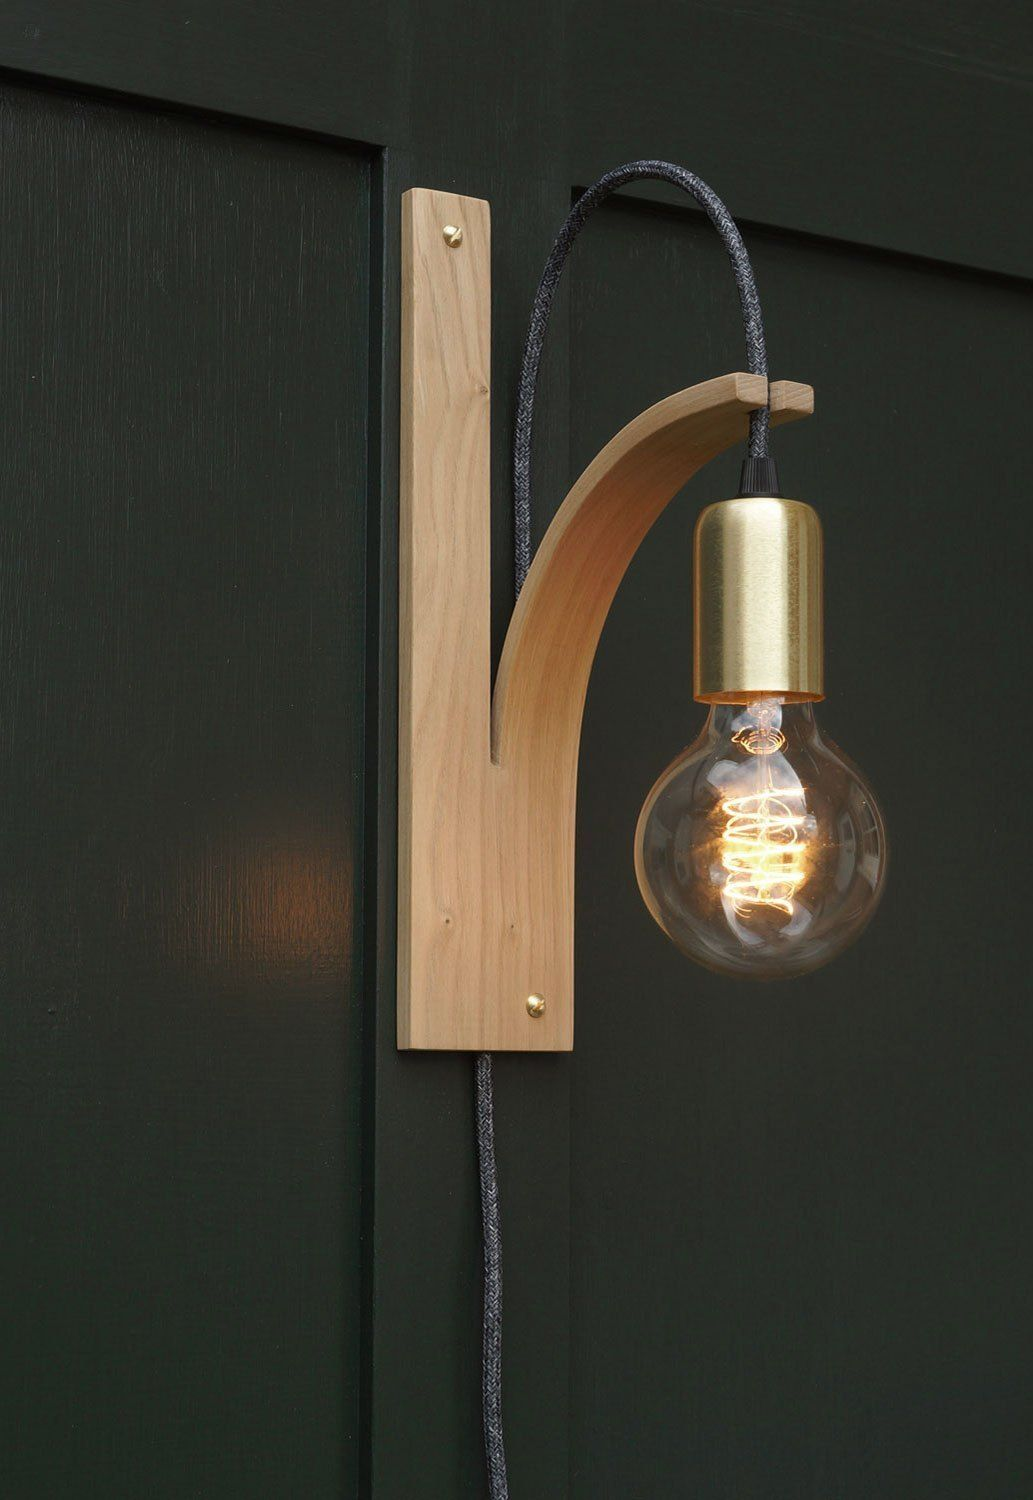 New Finds Home Reno Ideas Wall Lighting Decor